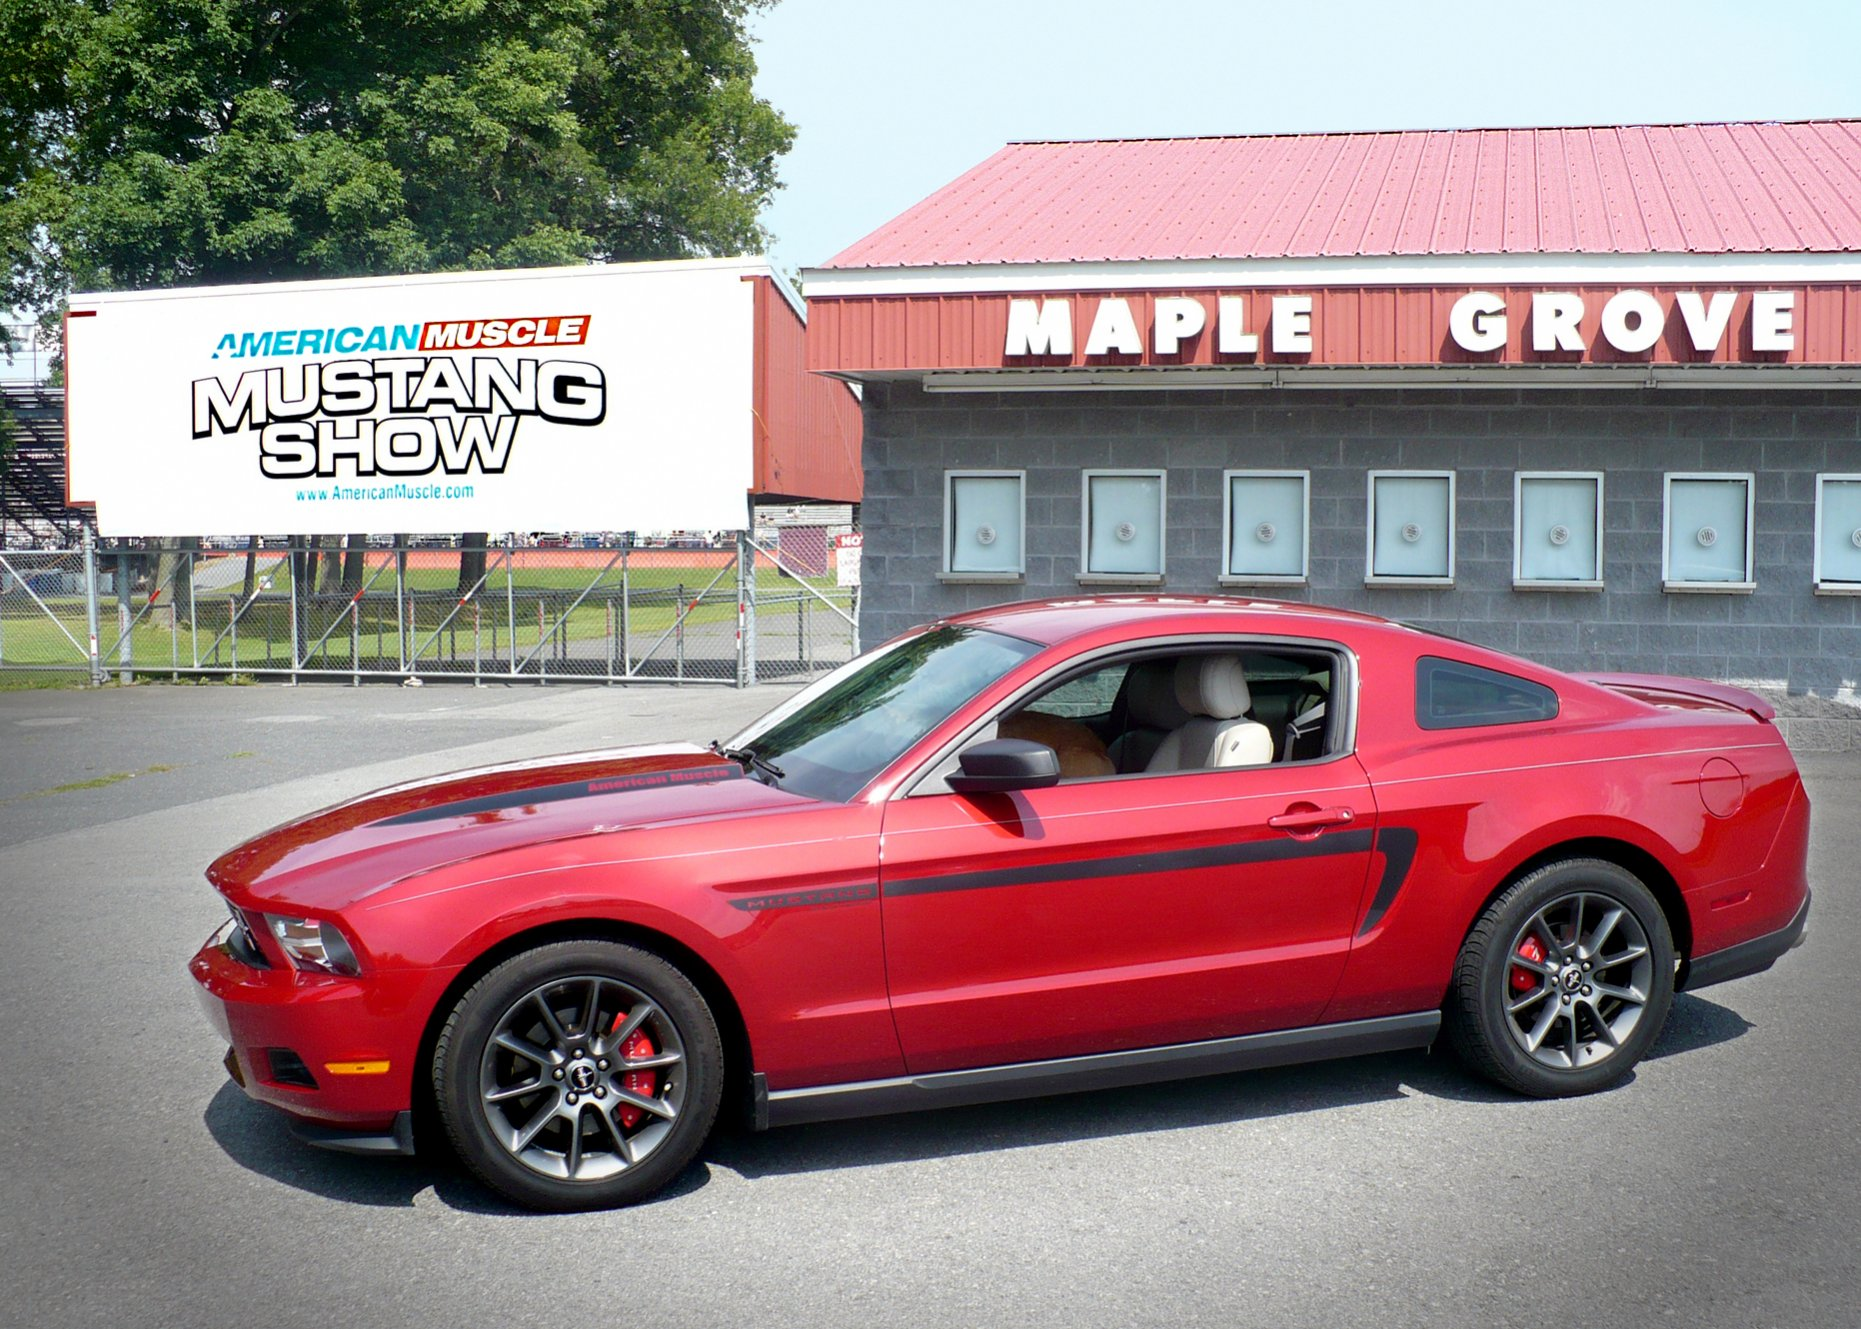 Click image for larger version  Name:Maple grove Mustang 8X10.jpg Views:32 Size:494.0 KB ID:188583